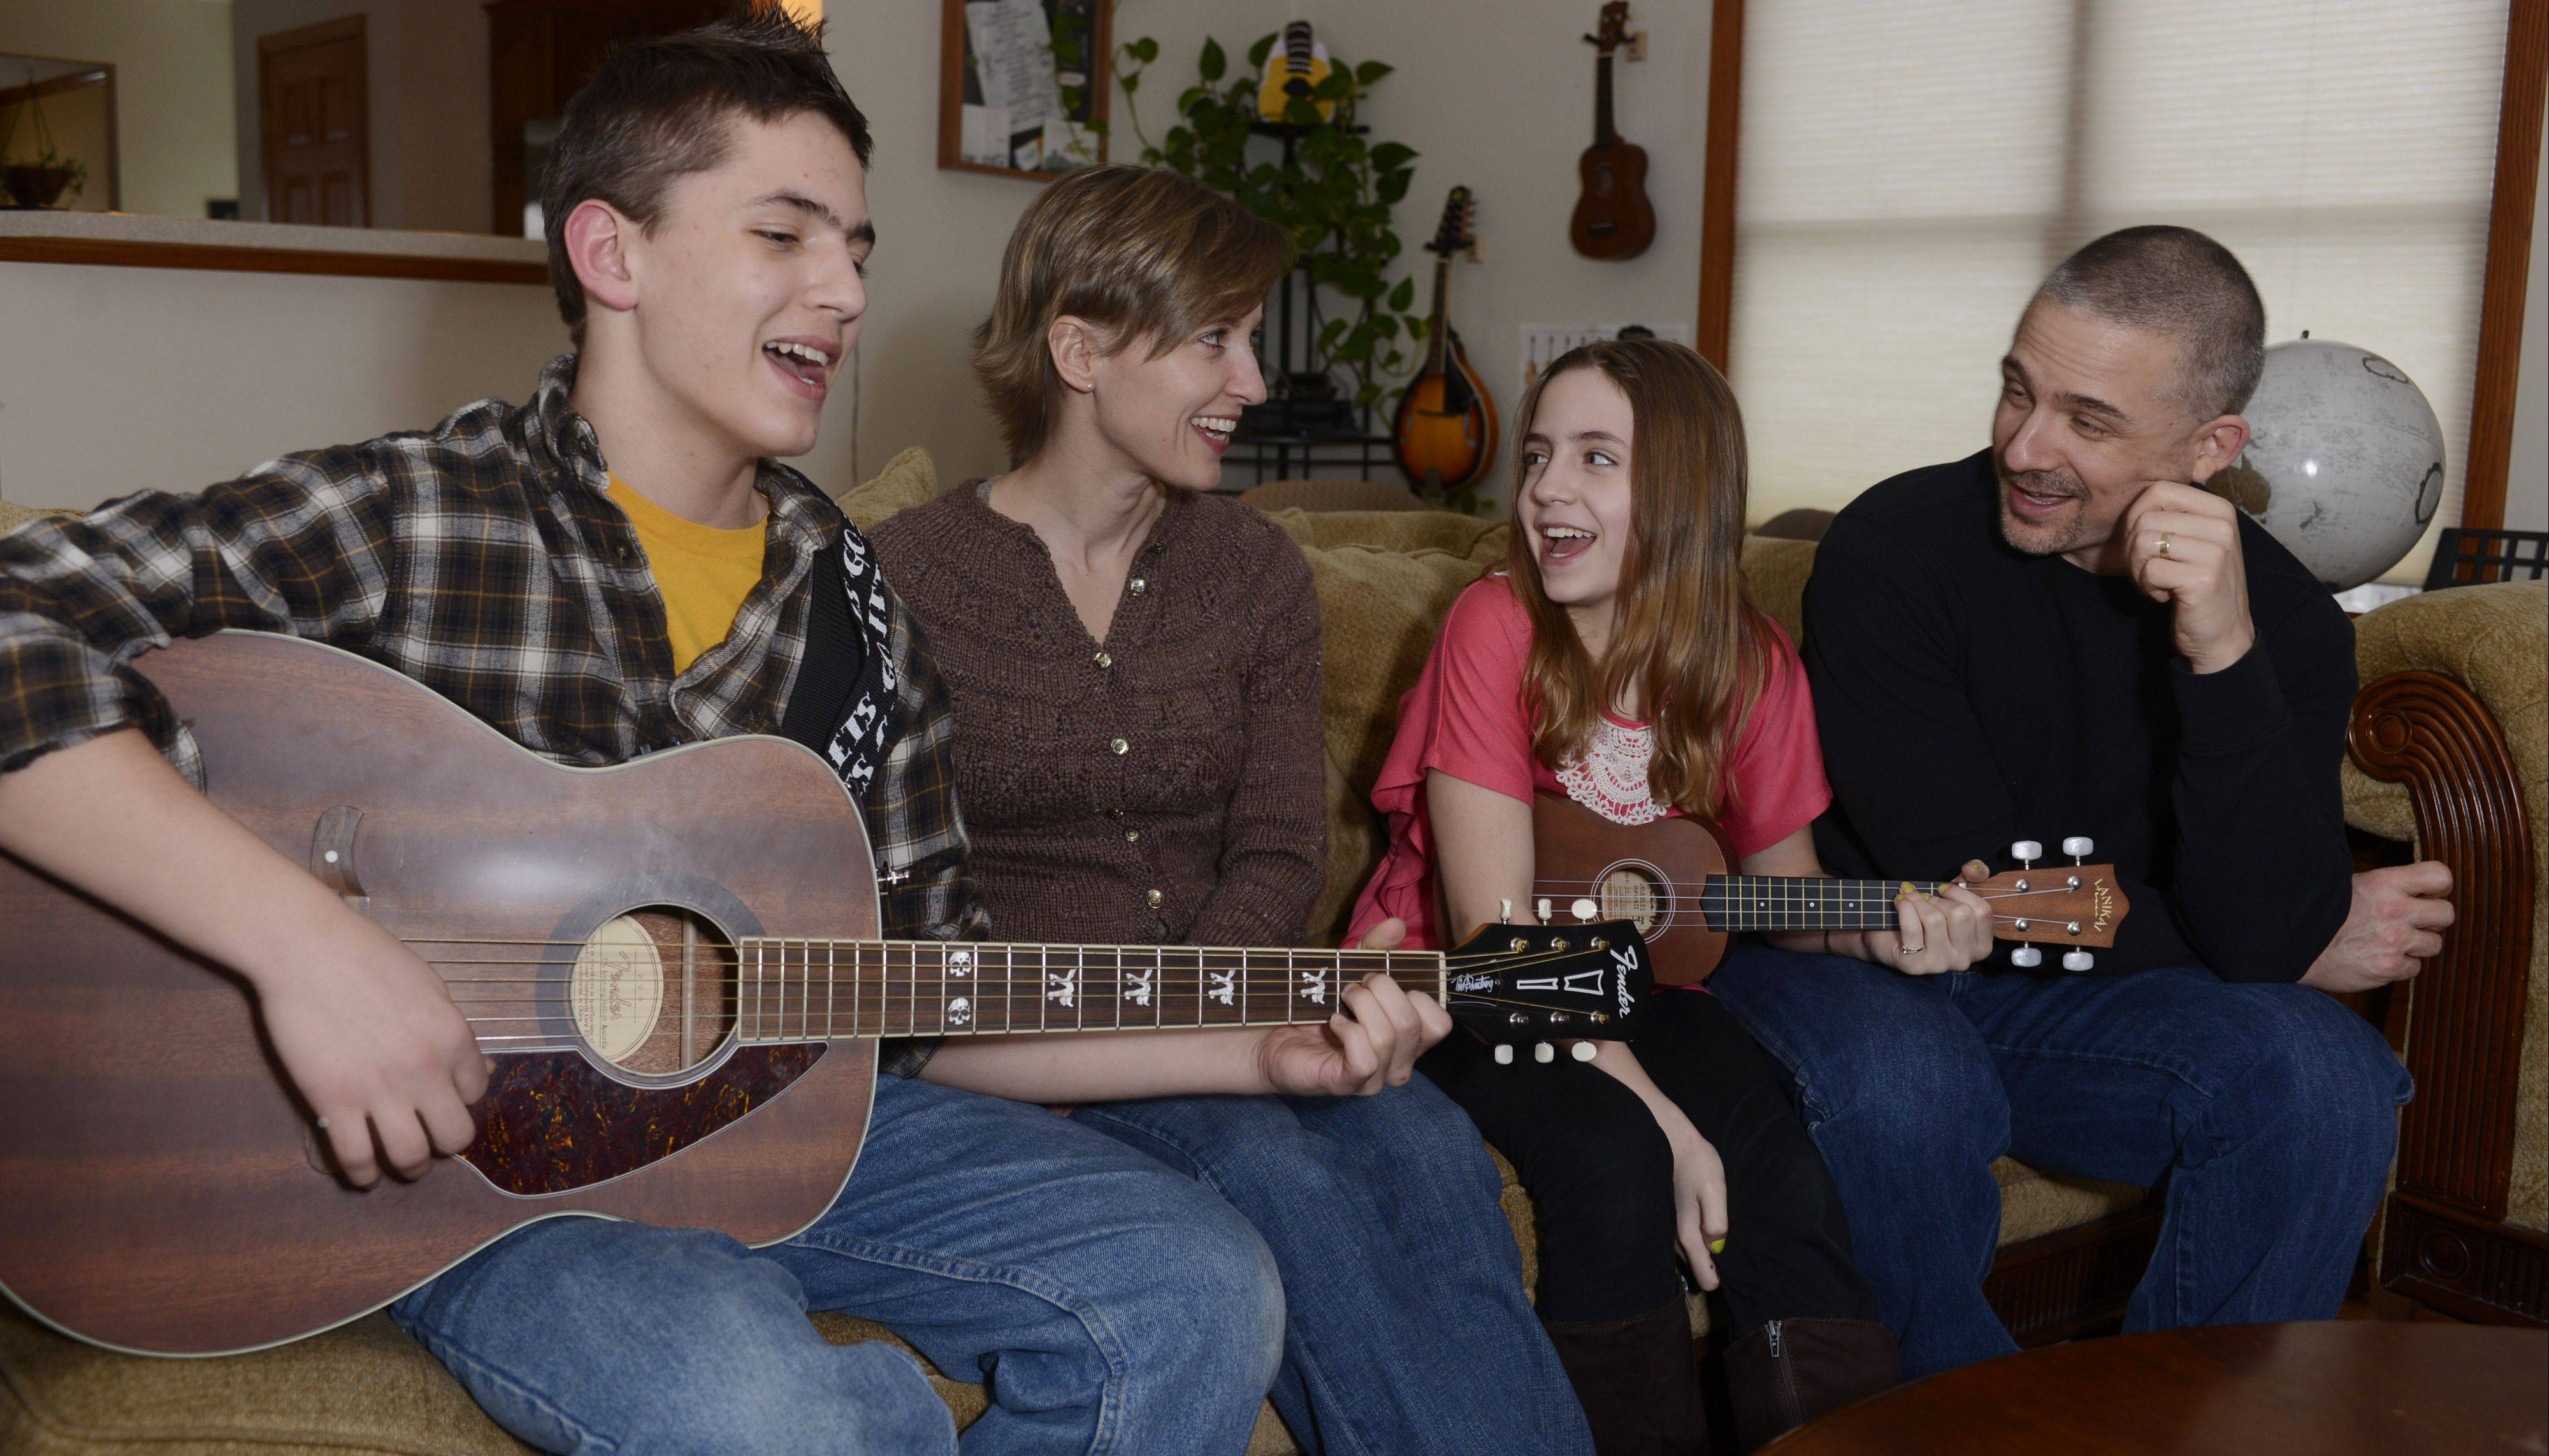 Cory and Cyndi Fosco sing with their children, Frederic (Fredo) 12, and Lily, 10, while sitting on the sofa in their Elk Grove Village home.